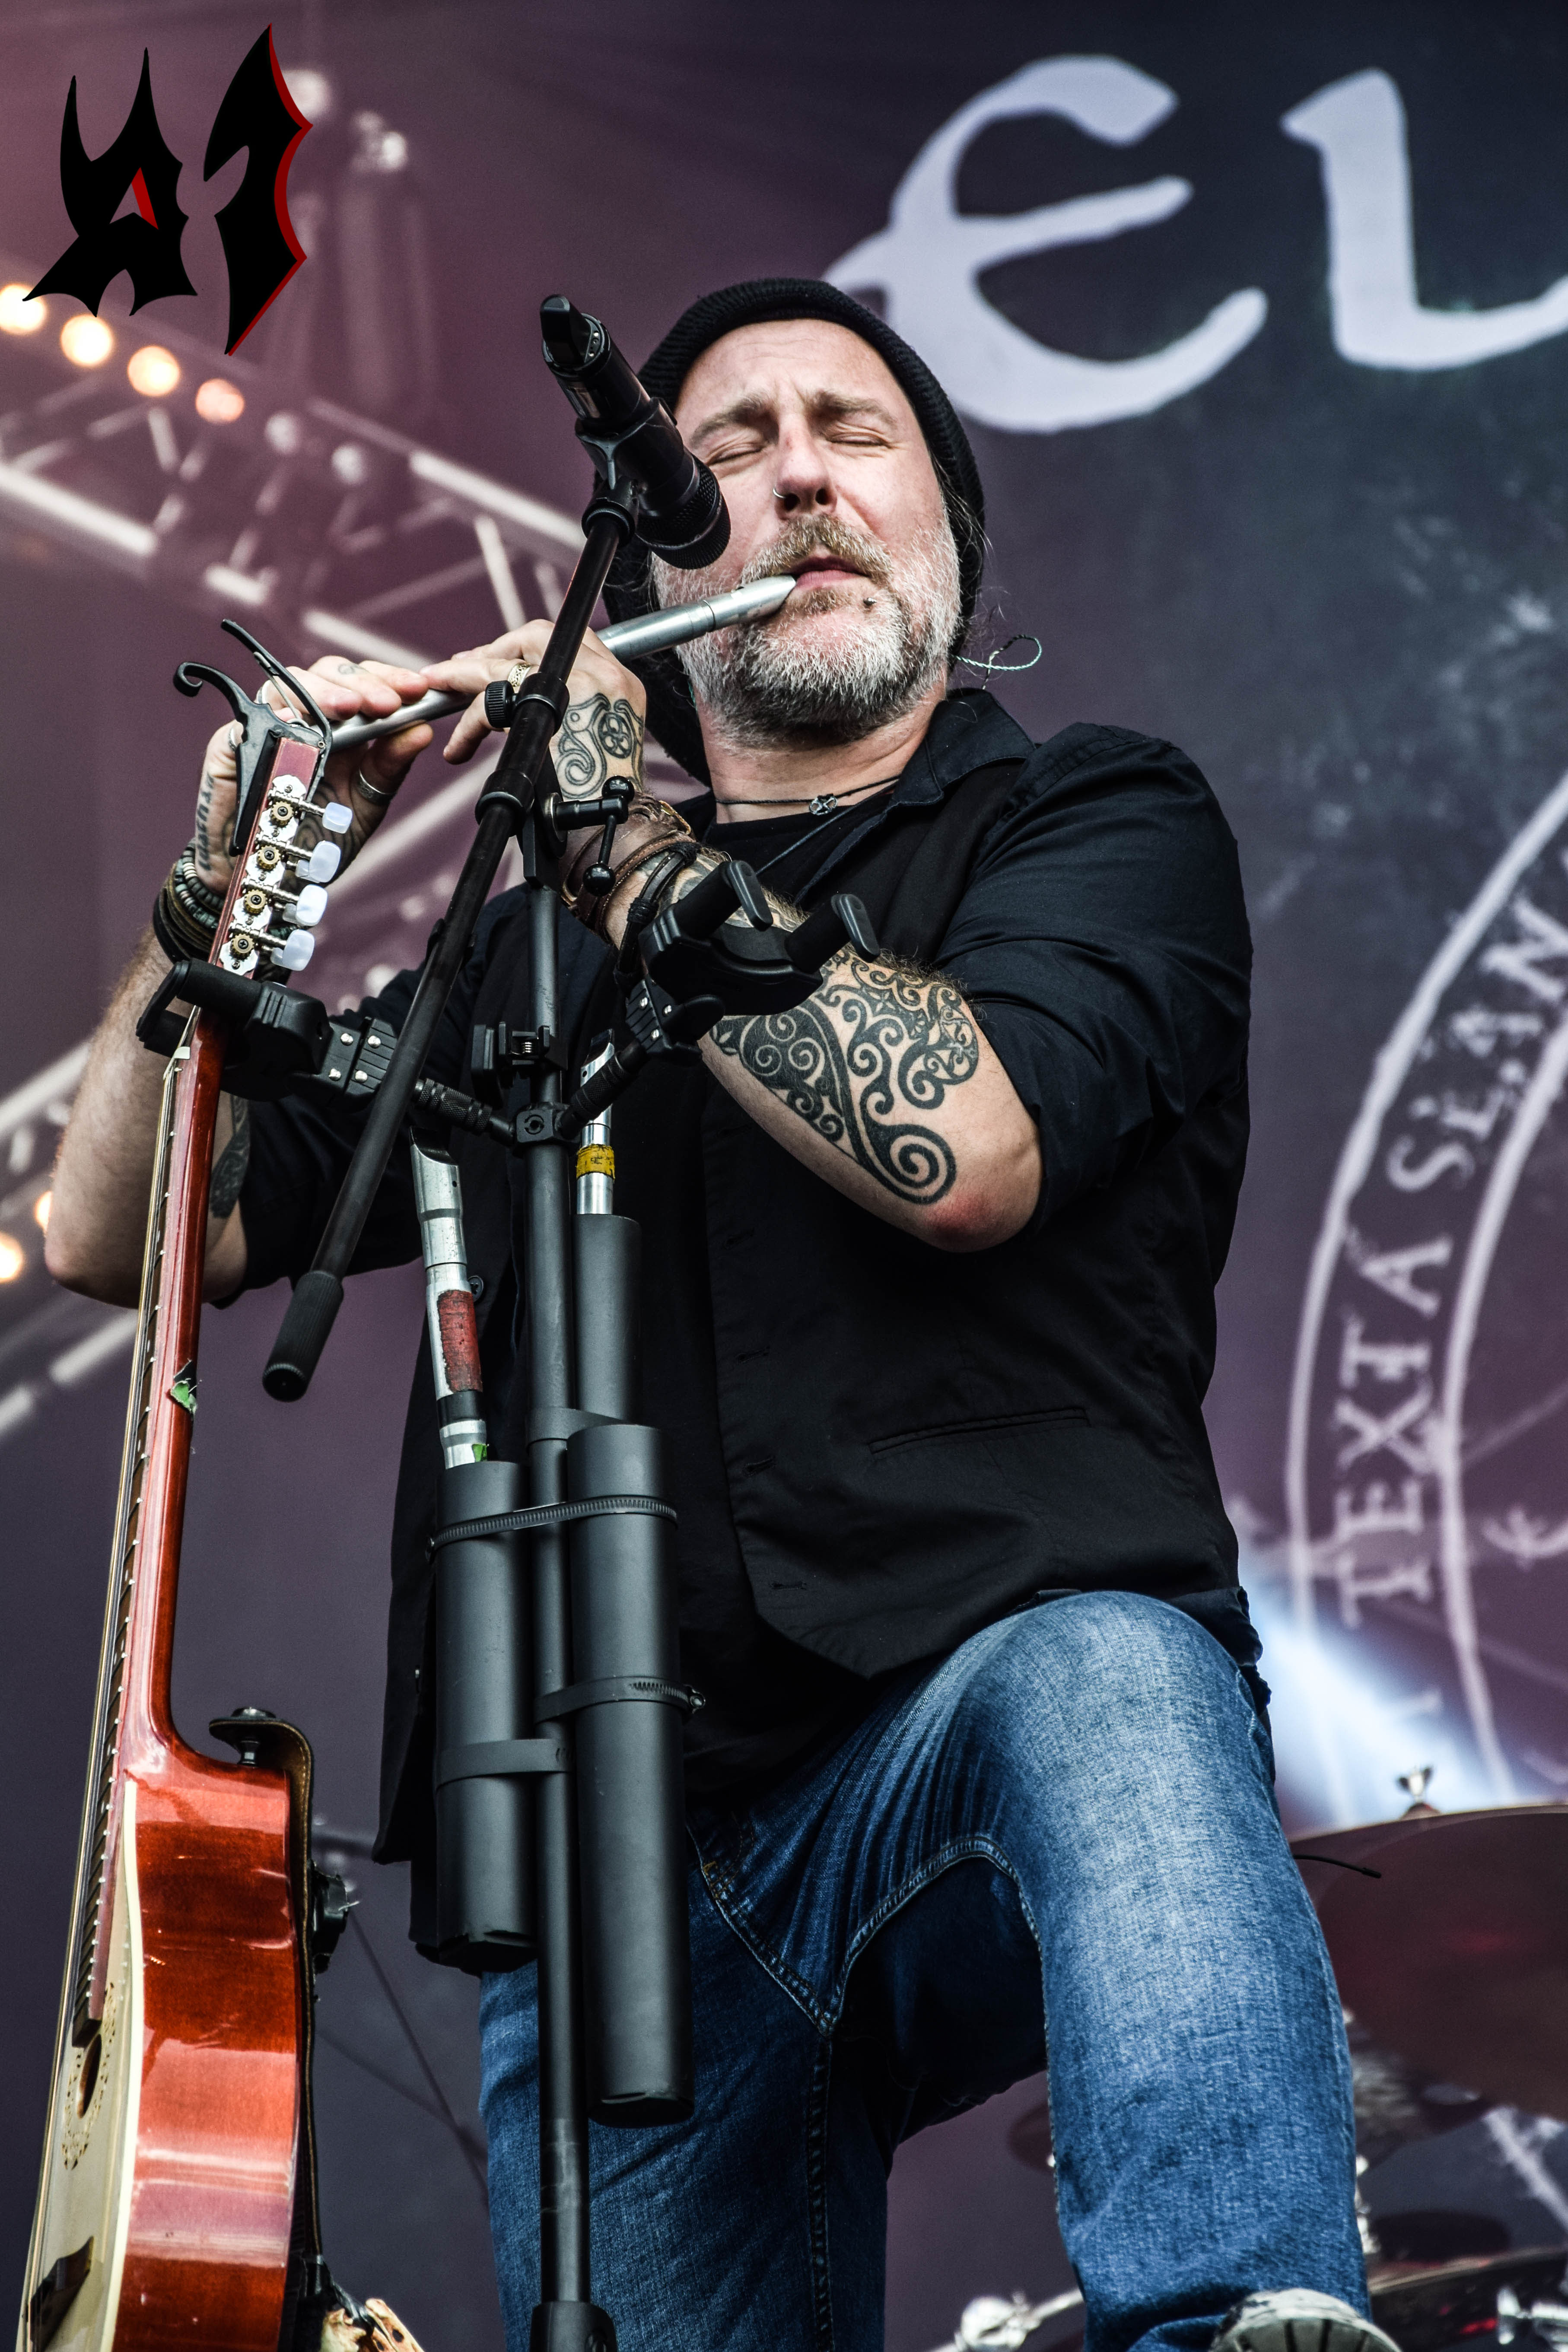 Donwload 2018 – Day 1 - Eluveitie 9